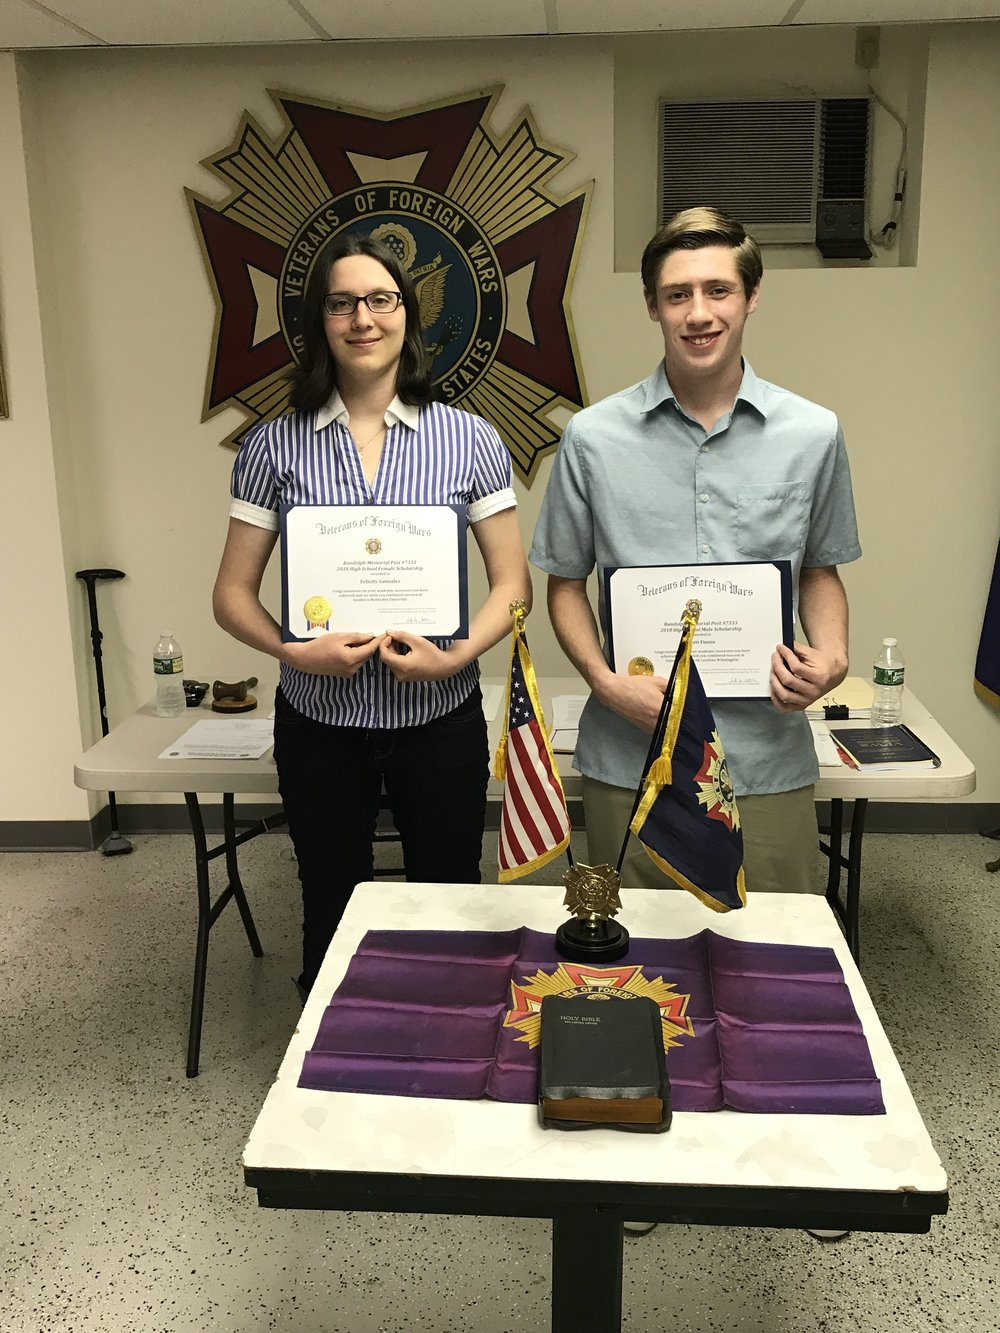 Randolph Memorial Post #7333 Veterans of Foreign Wars presented their 2018 scholarship awards to Felicity Gonzalez and Scott Finnis.